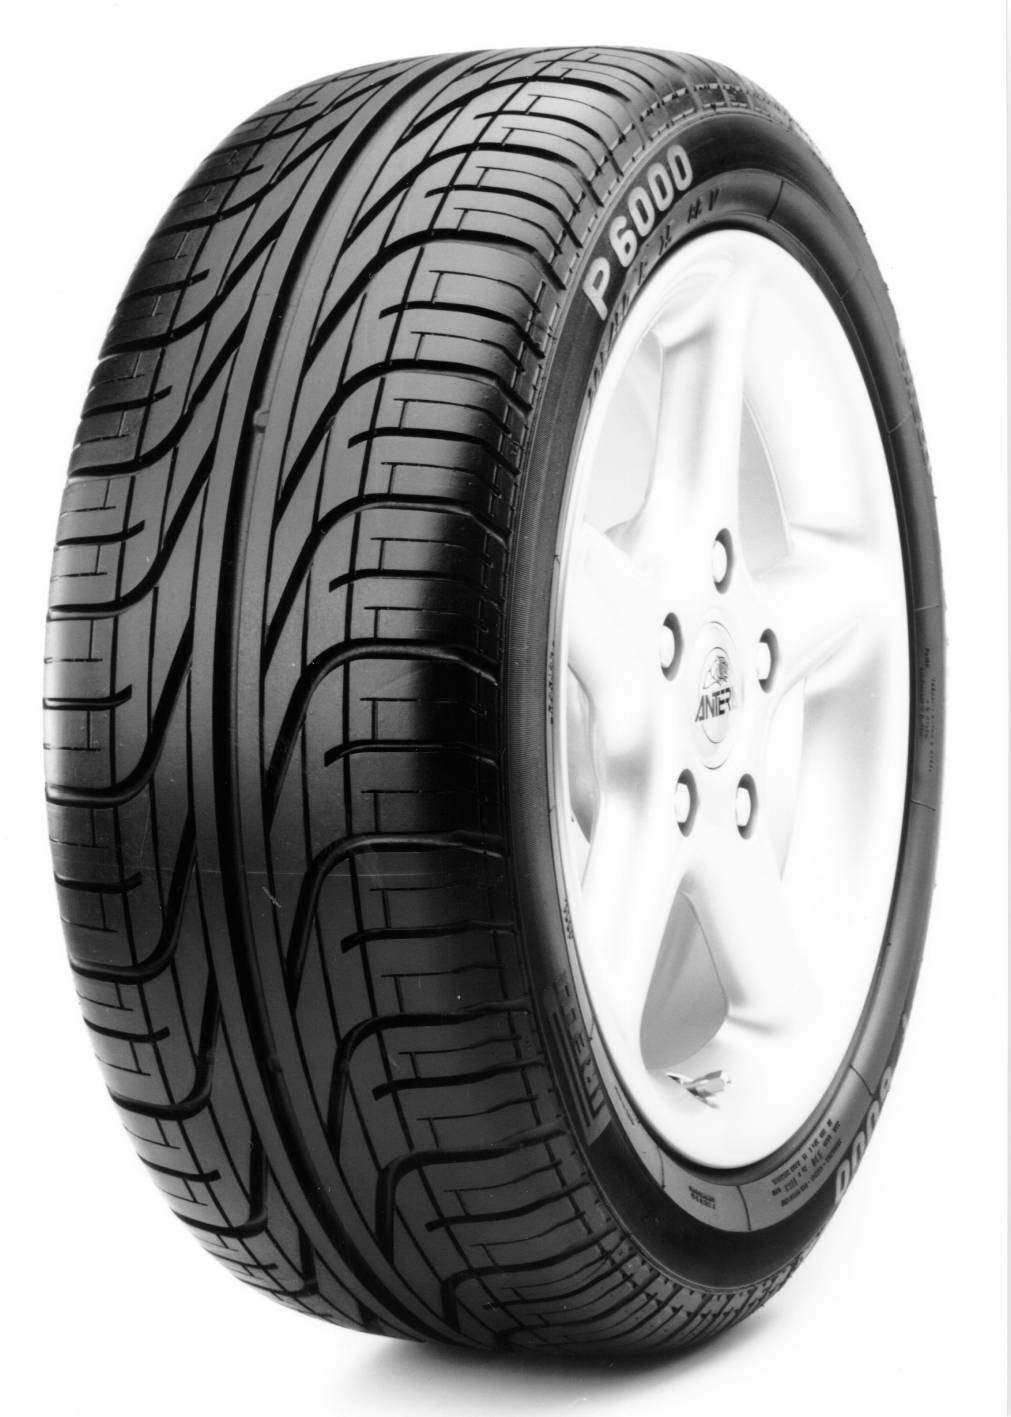 PIRELLI P6000 POWERGY 235/50R18